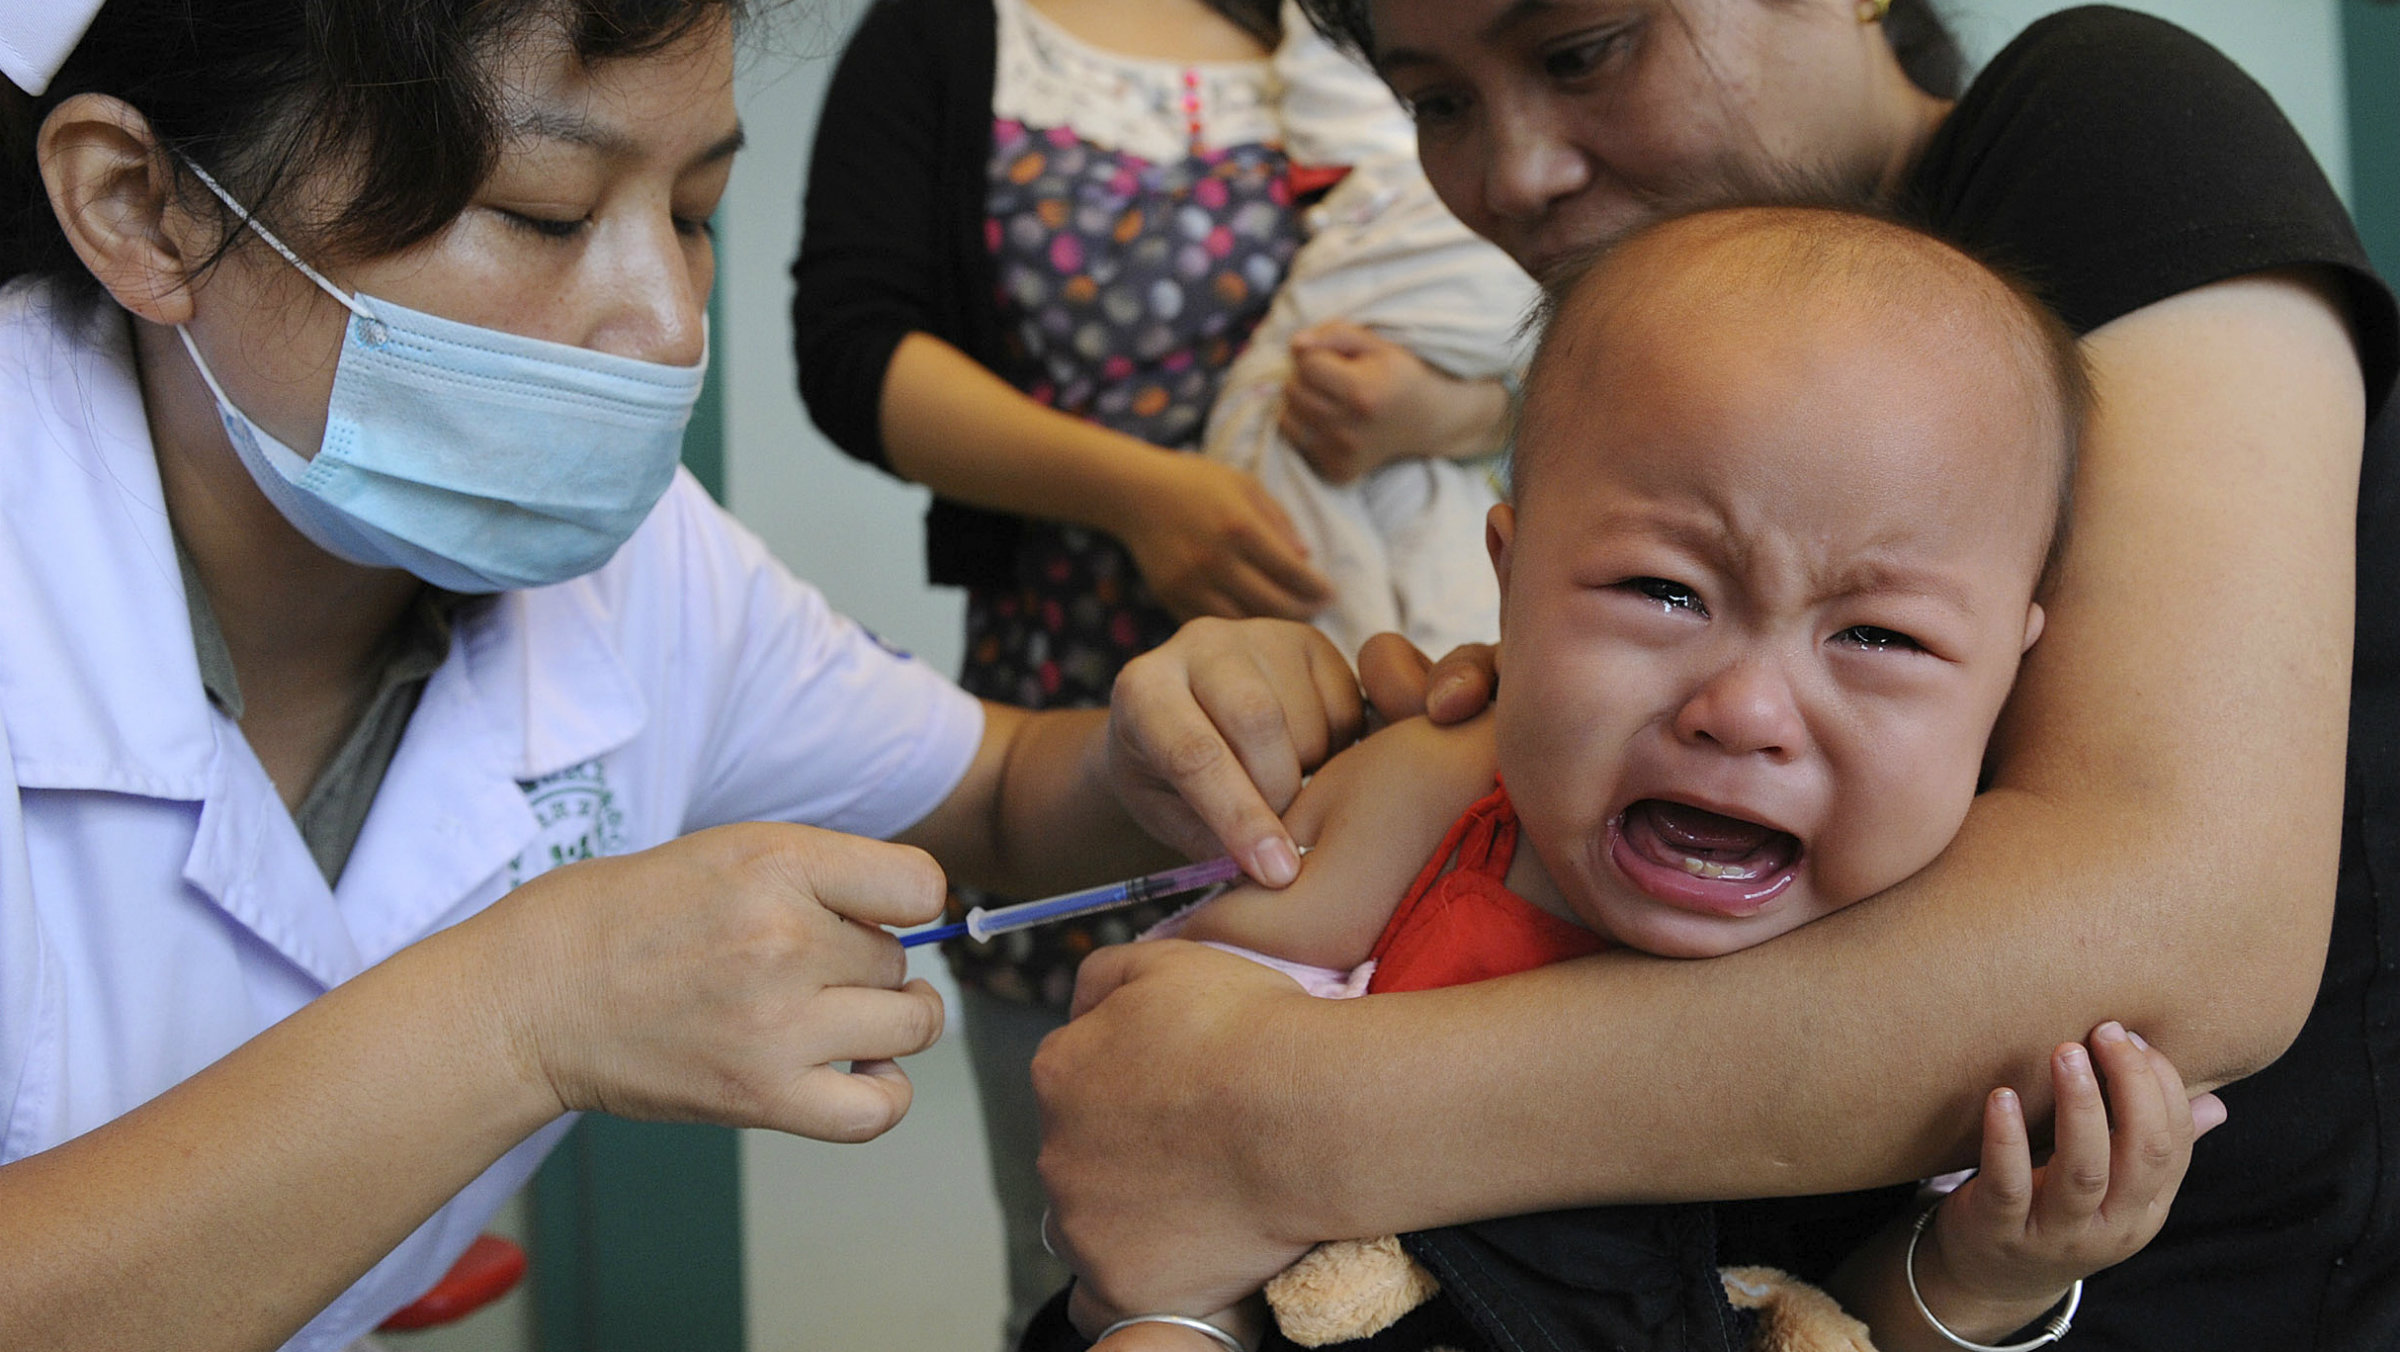 A nurse vaccinates a baby against measles in Hefei, Anhui province.